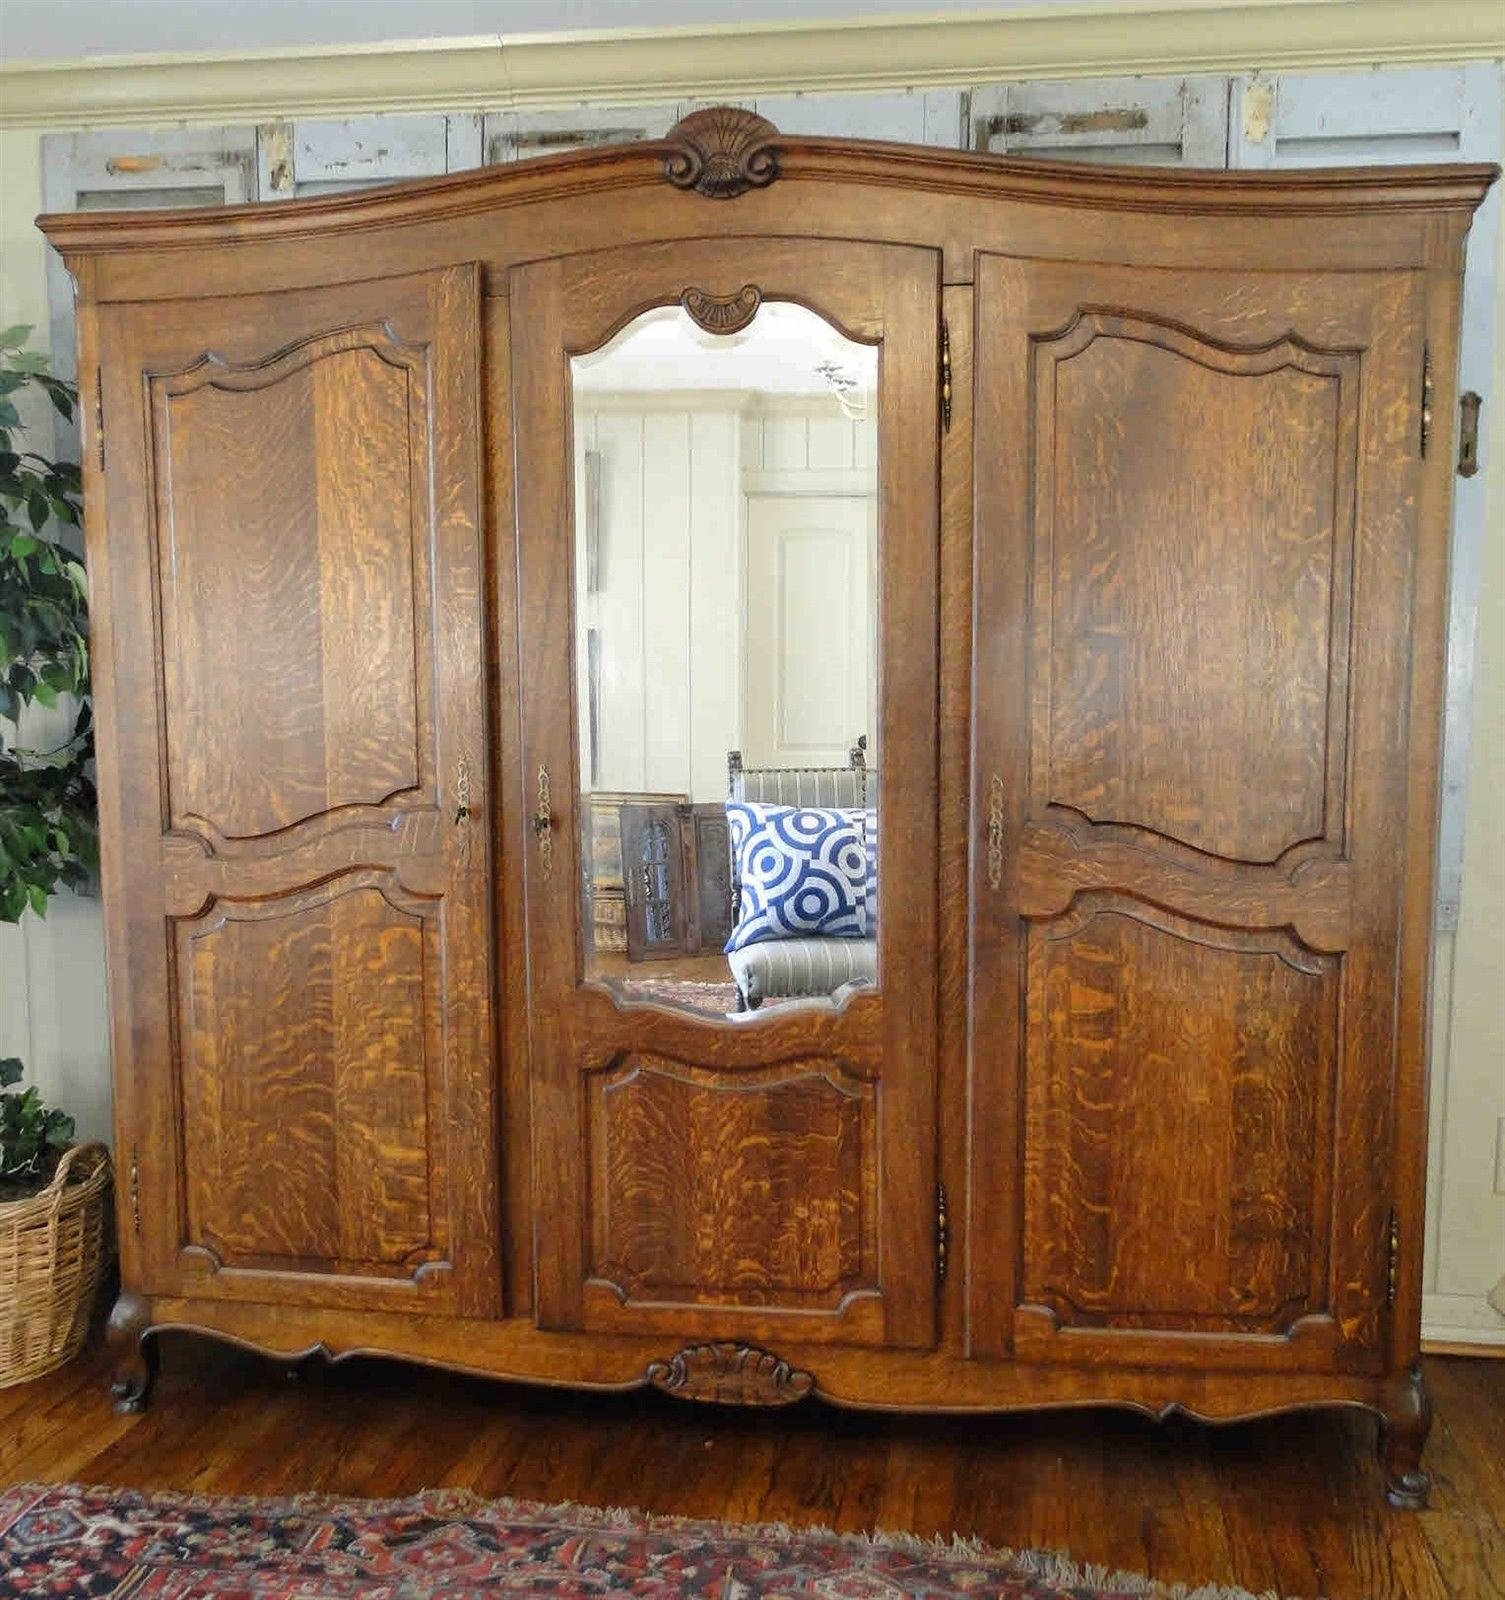 Antique French Country Wardrobe Armoire 3 door shelves hanging rod Mirror Carved